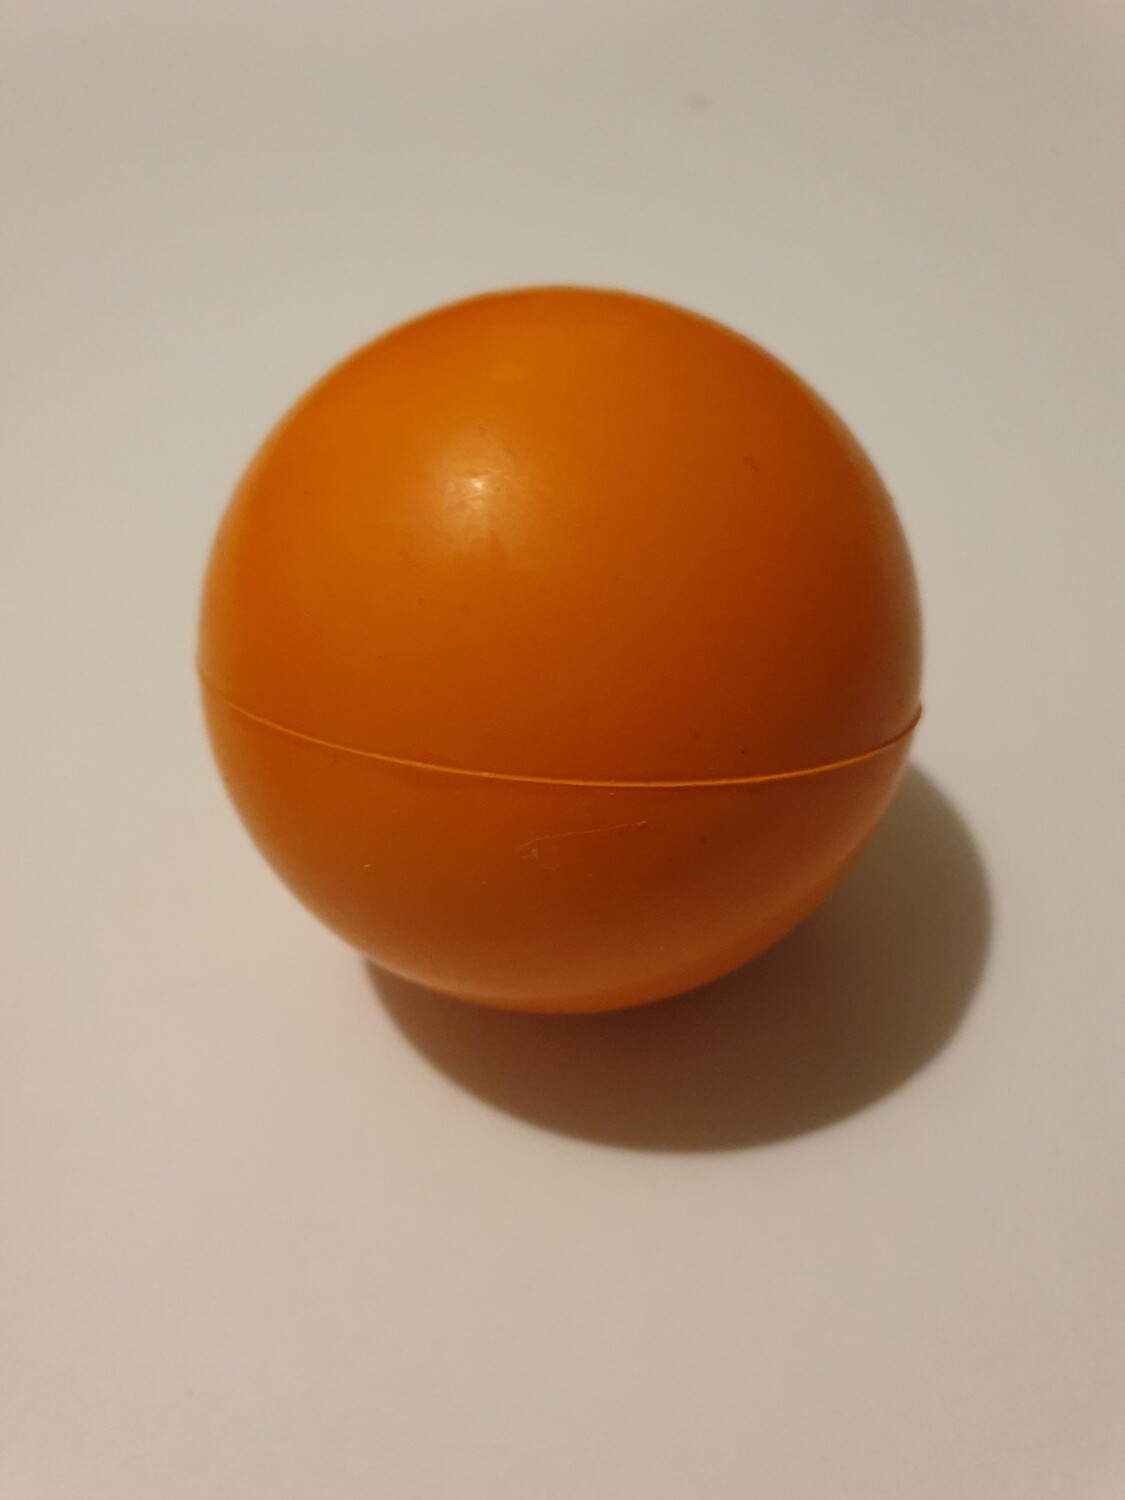 Medium Orange Solid Rubber Ball